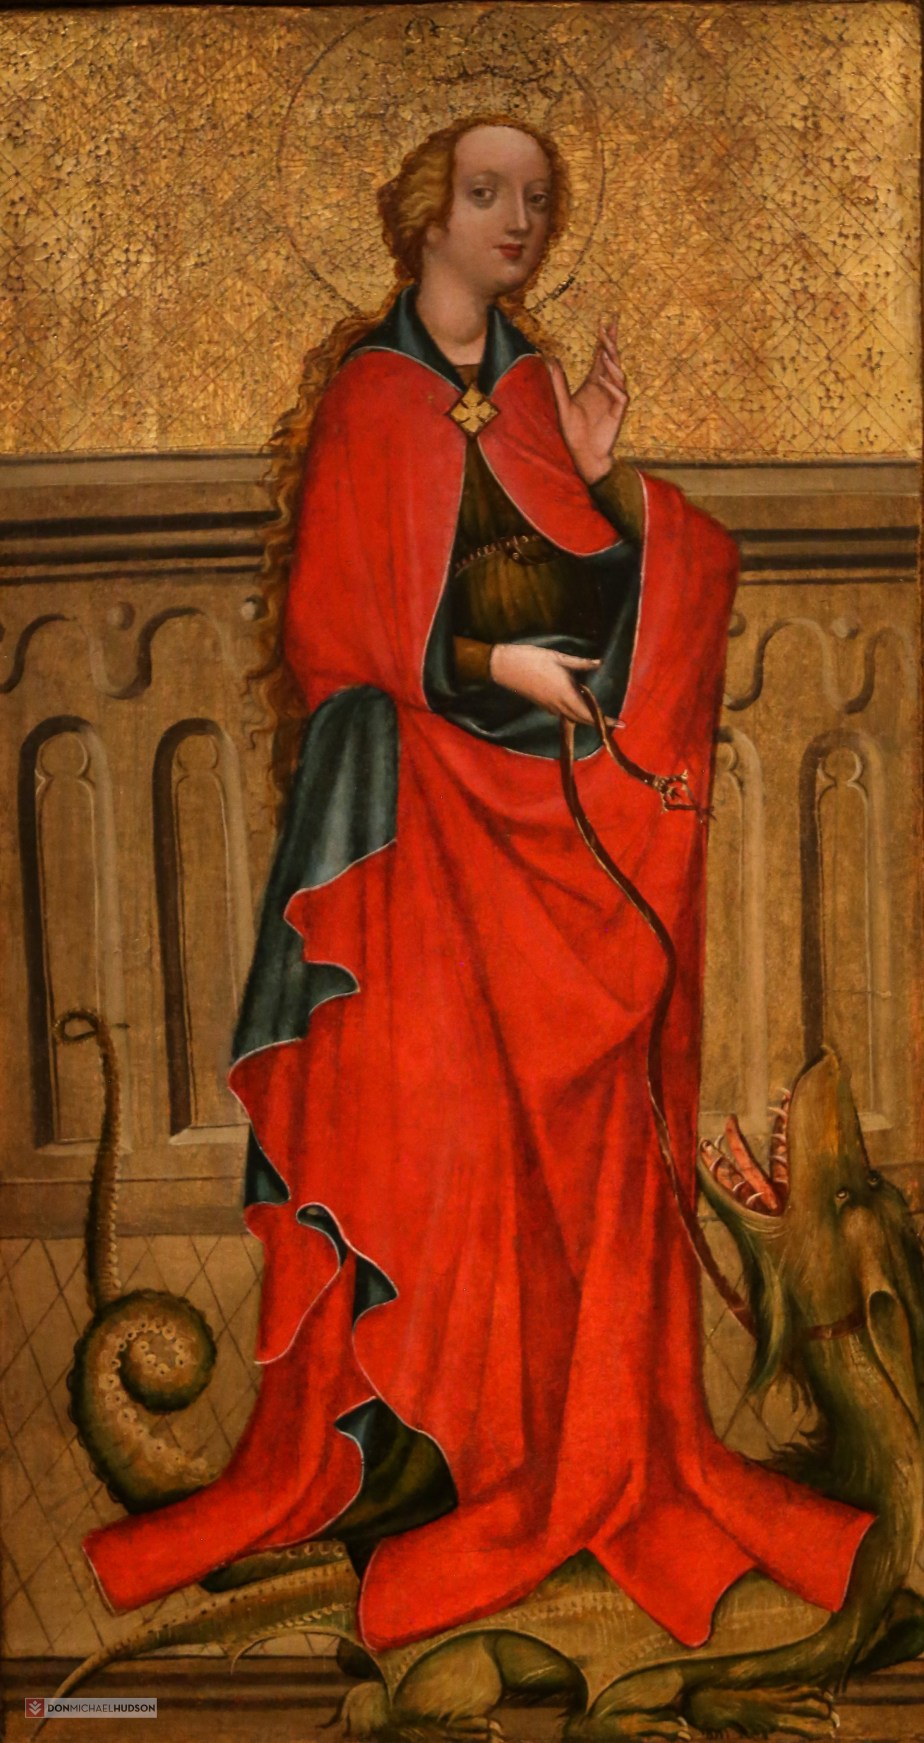 St. Margaret, Altarpiece from Hyrov, Southern Bohemia (1430-1440)